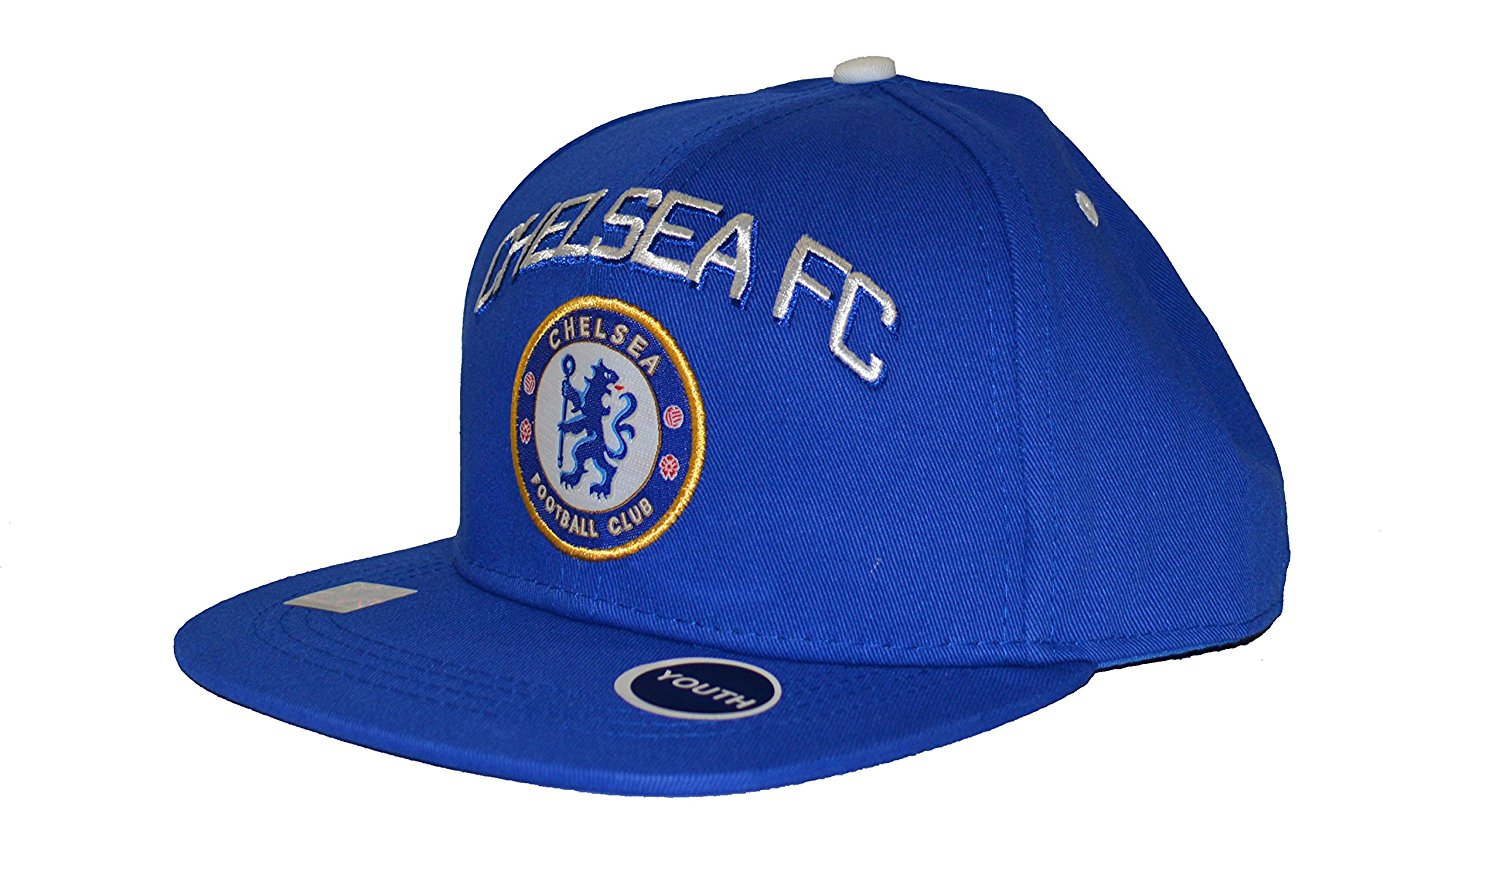 Get Quotations · Chelsea Fc Snapback Youth Kids Adjustable Cap Hat - White  - Blue New Season 9165e9dc7aa